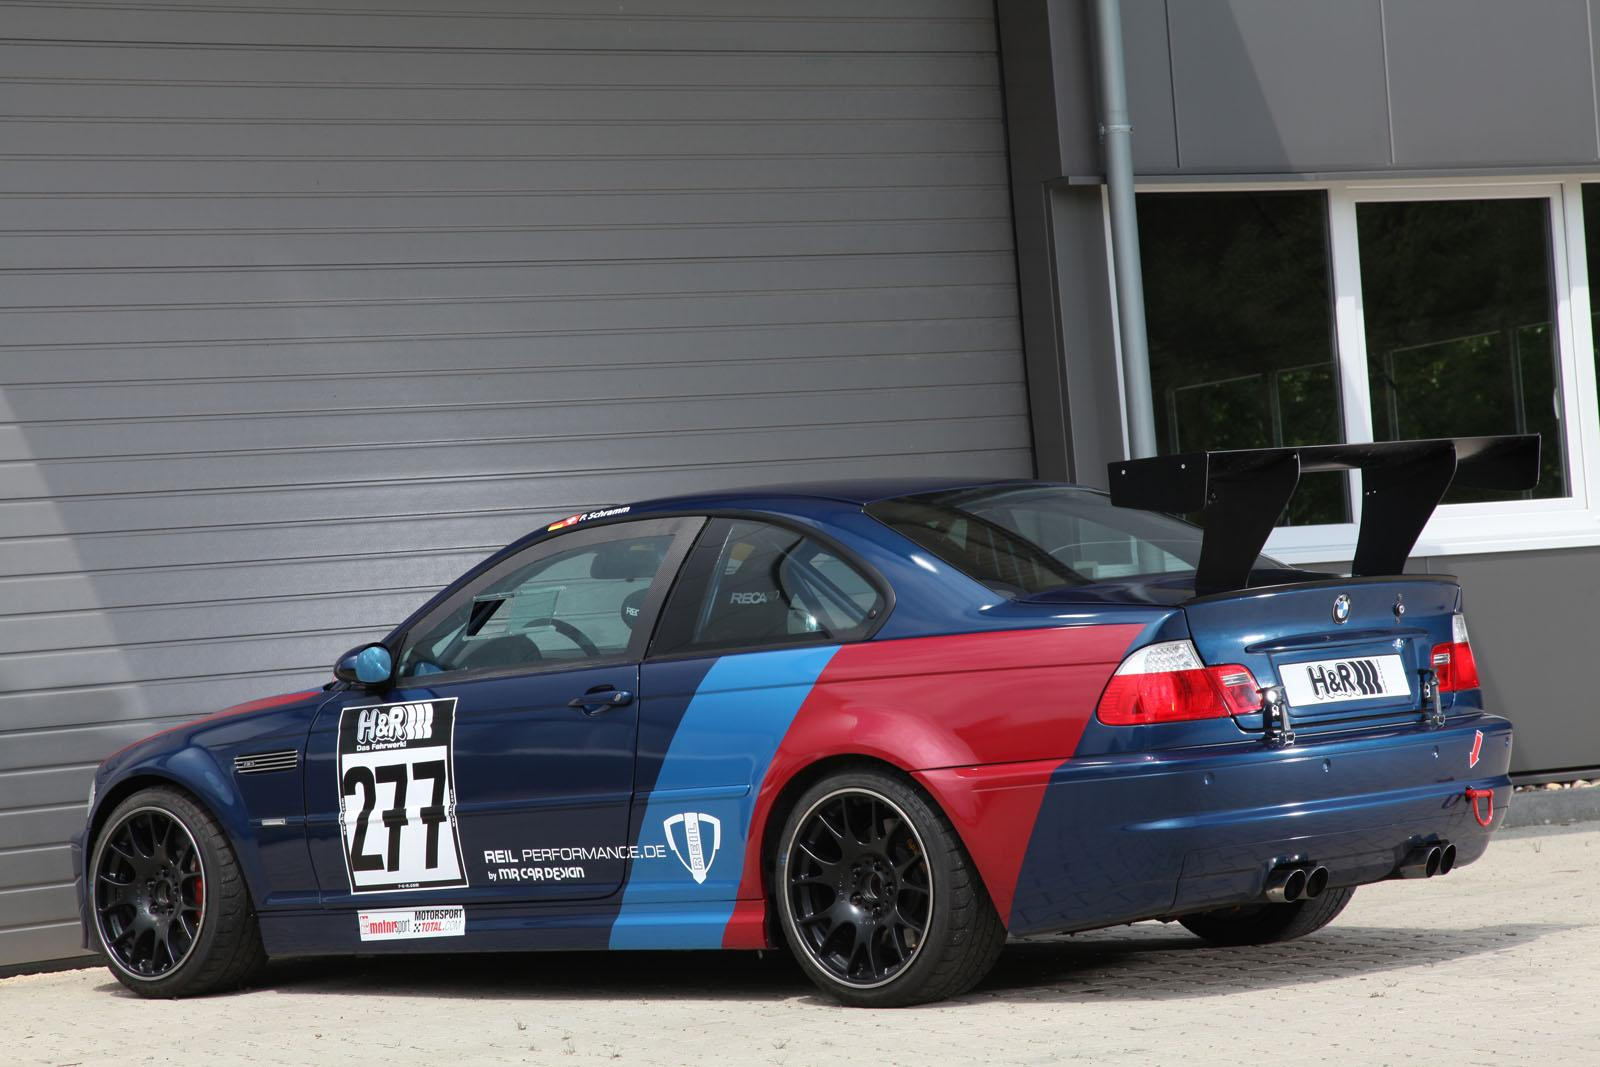 bmw m3 csl tuned by reil performance nurburgring in 7 43. Black Bedroom Furniture Sets. Home Design Ideas